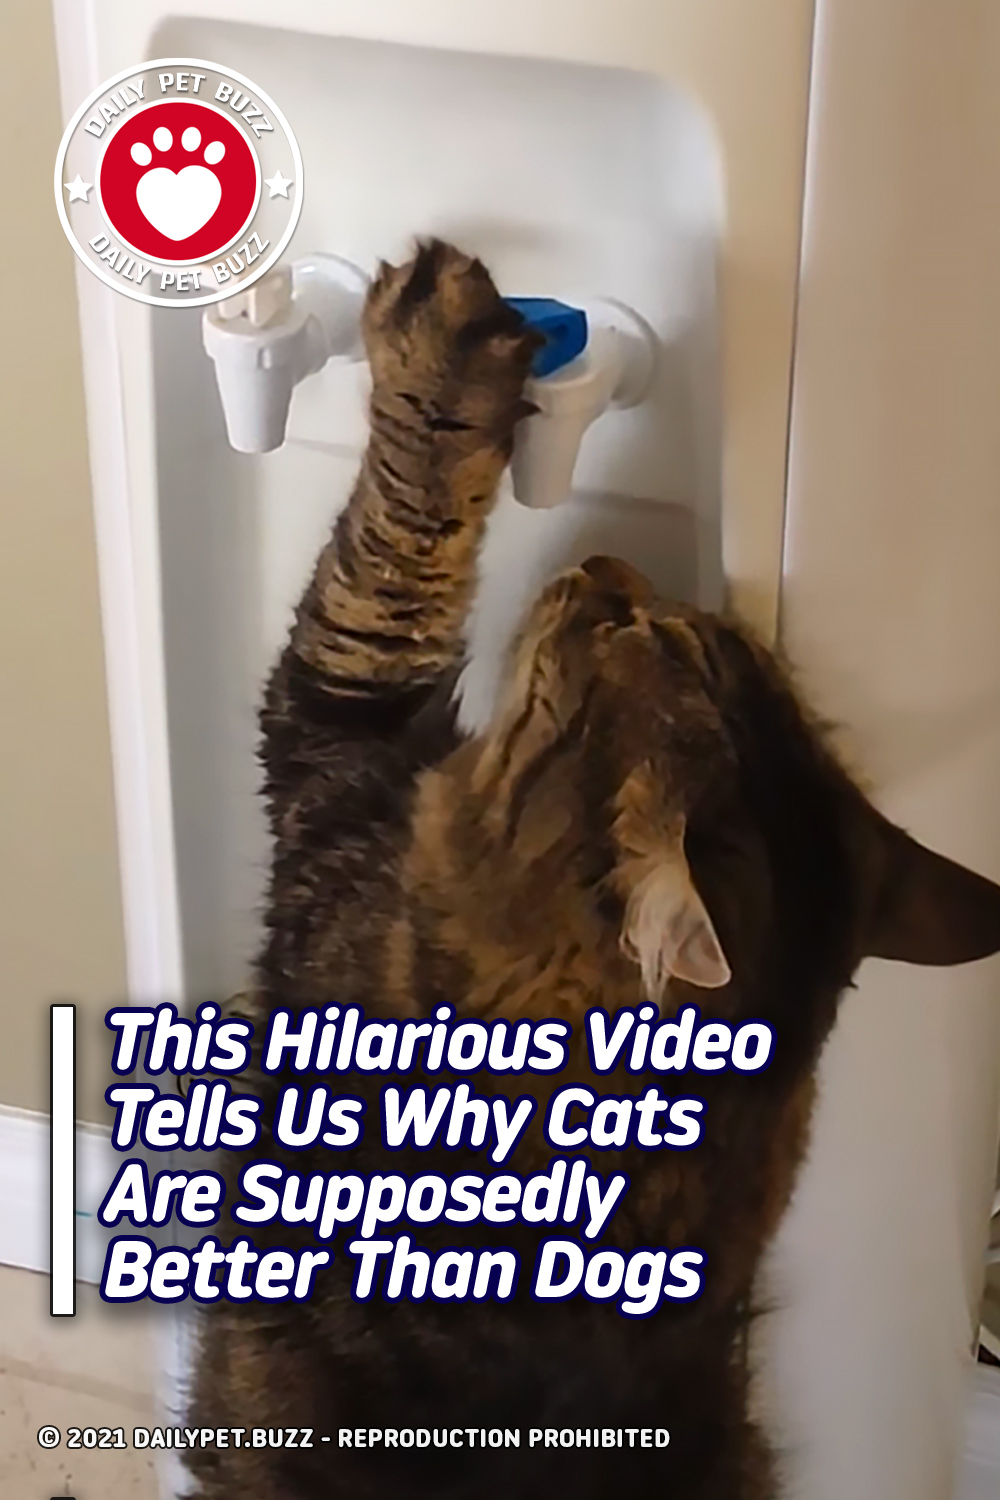 This Hilarious Video Tells Us Why Cats Are Supposedly Better Than Dogs